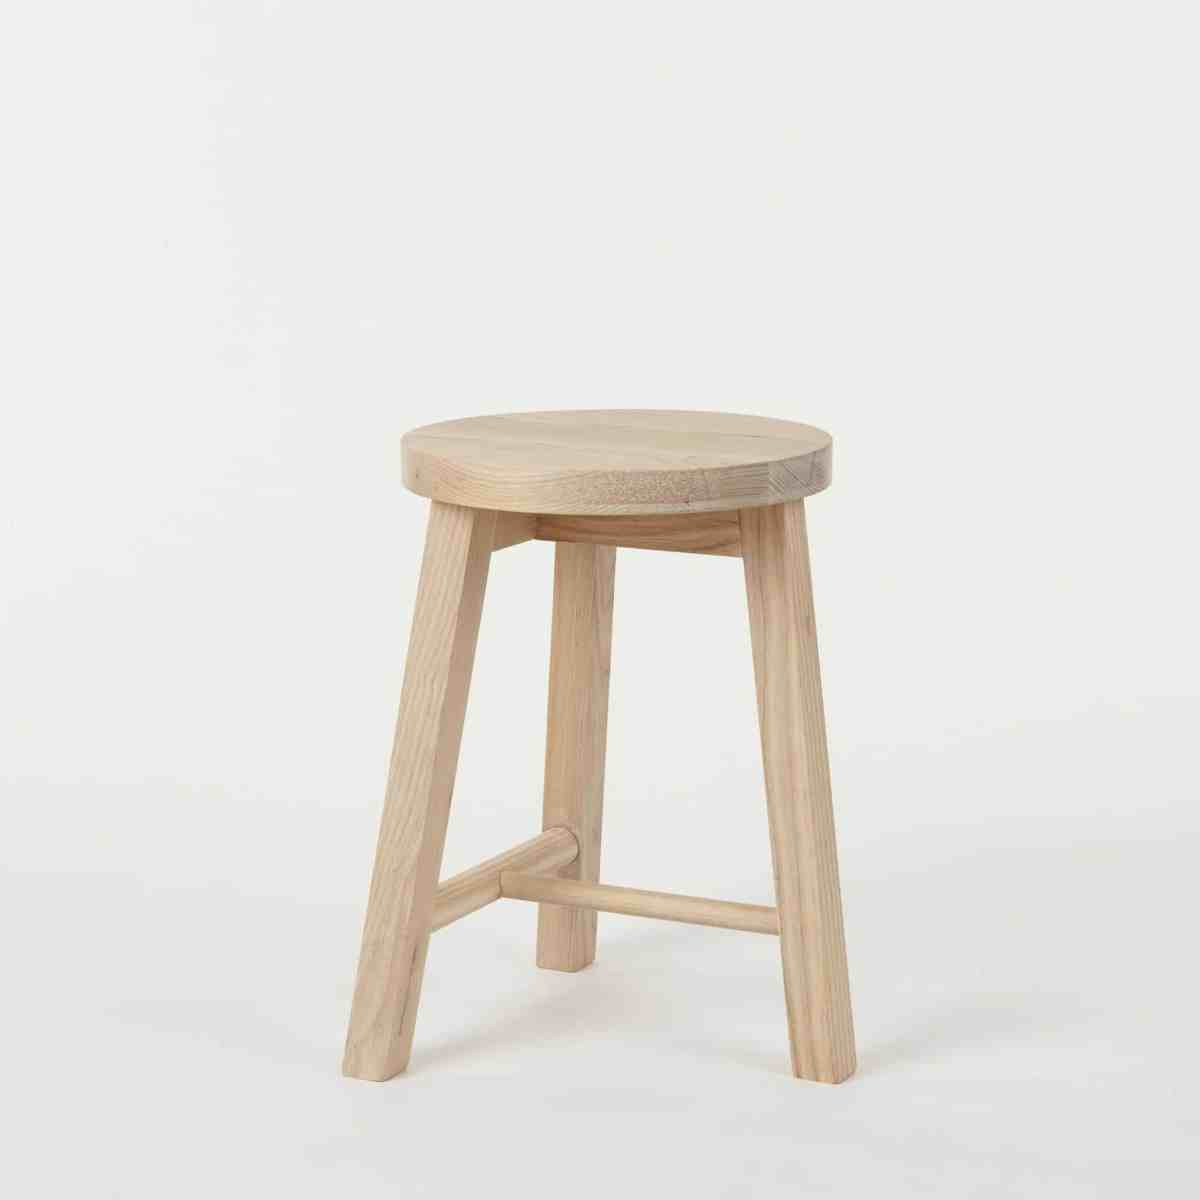 series-two-stool-round-ash-another-country-005